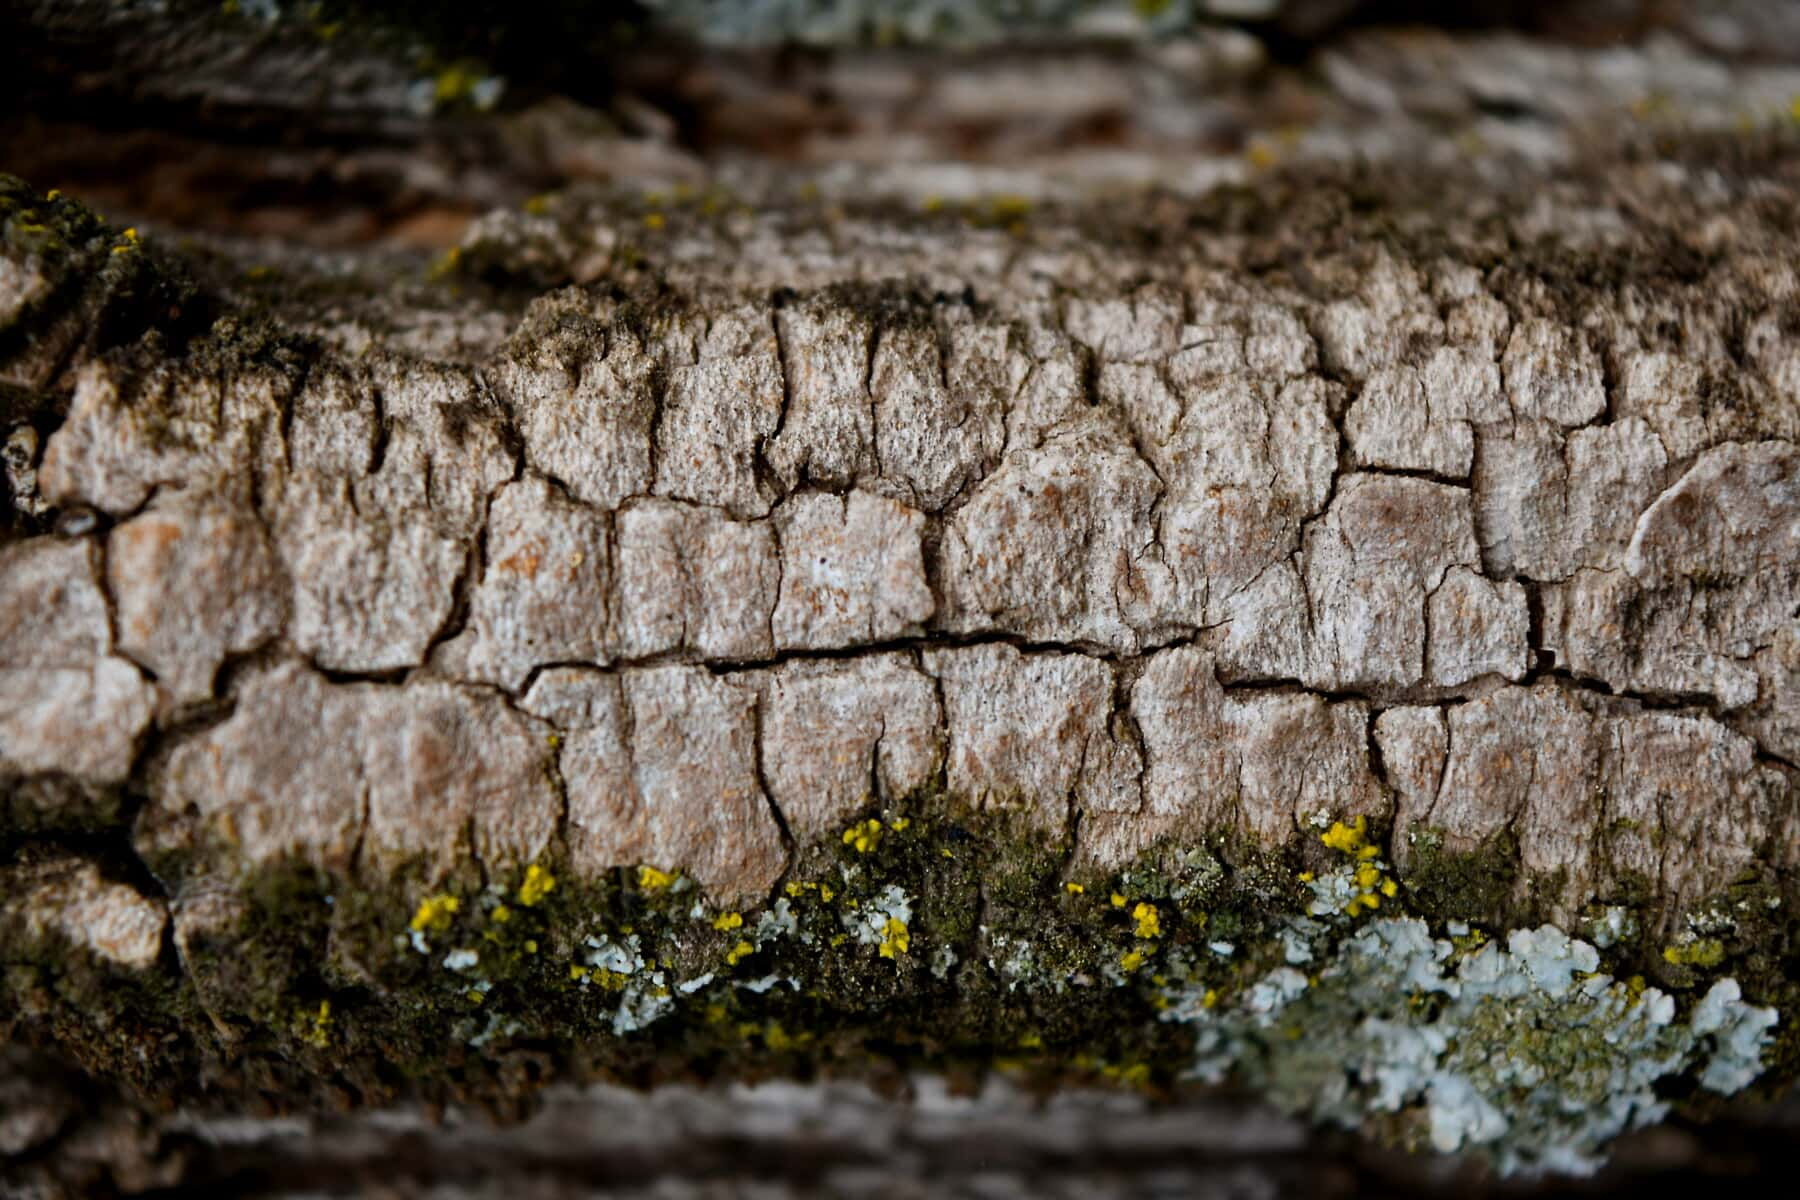 close-up, bark, lichen, moss, focus, fungus, macro, nature, texture, surface